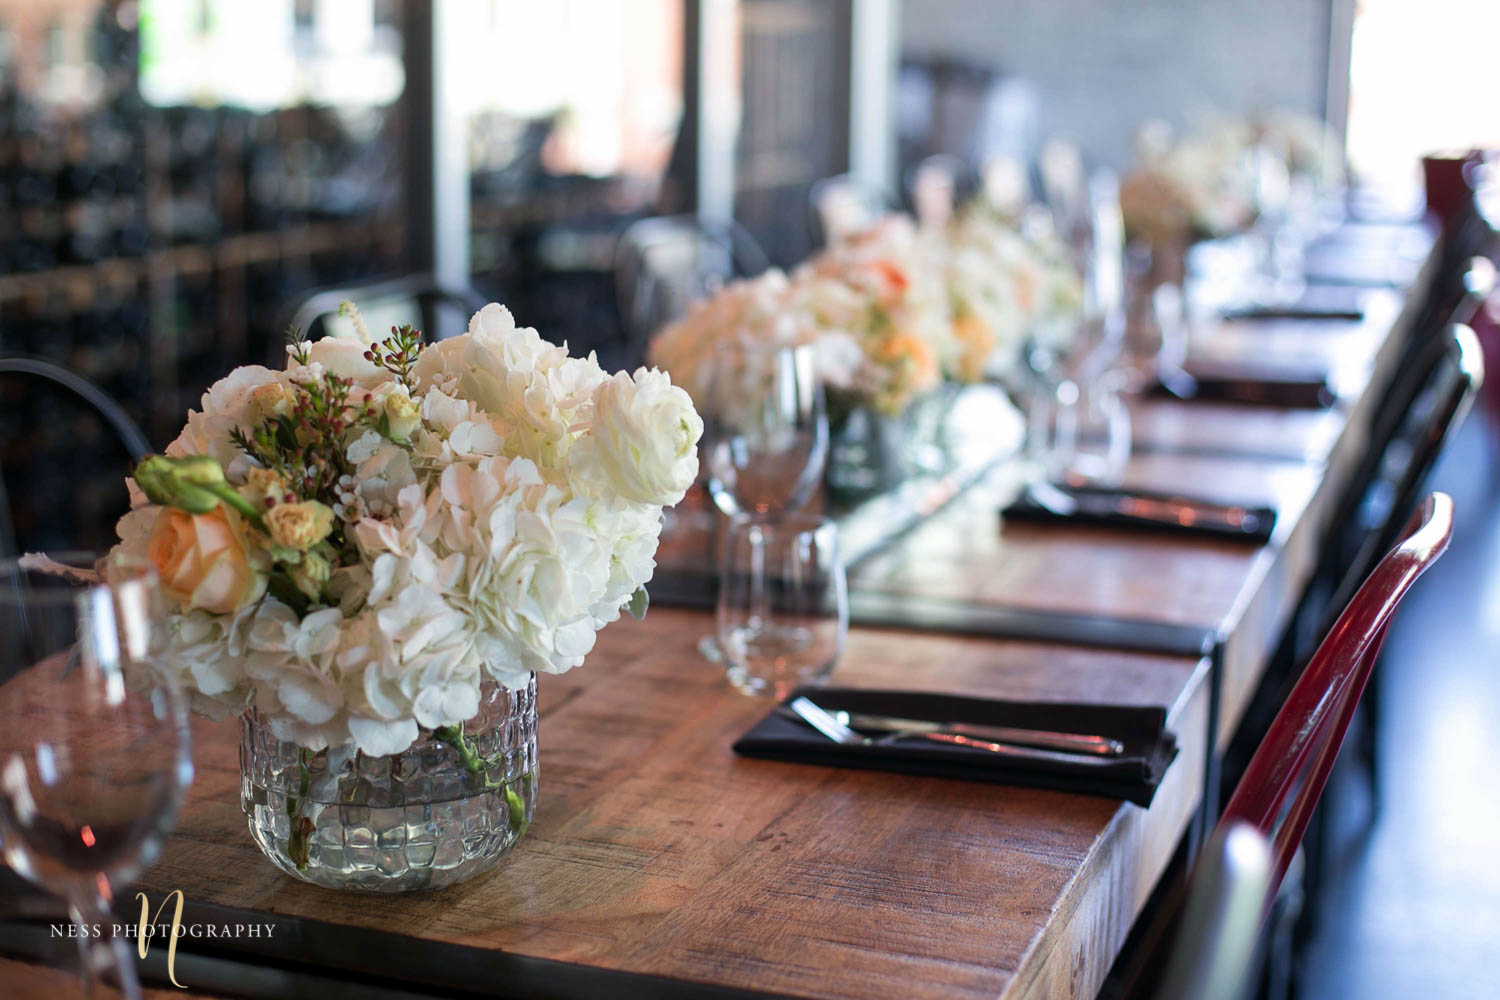 floral vases on the table and background blurry at engagement Party in Montreal